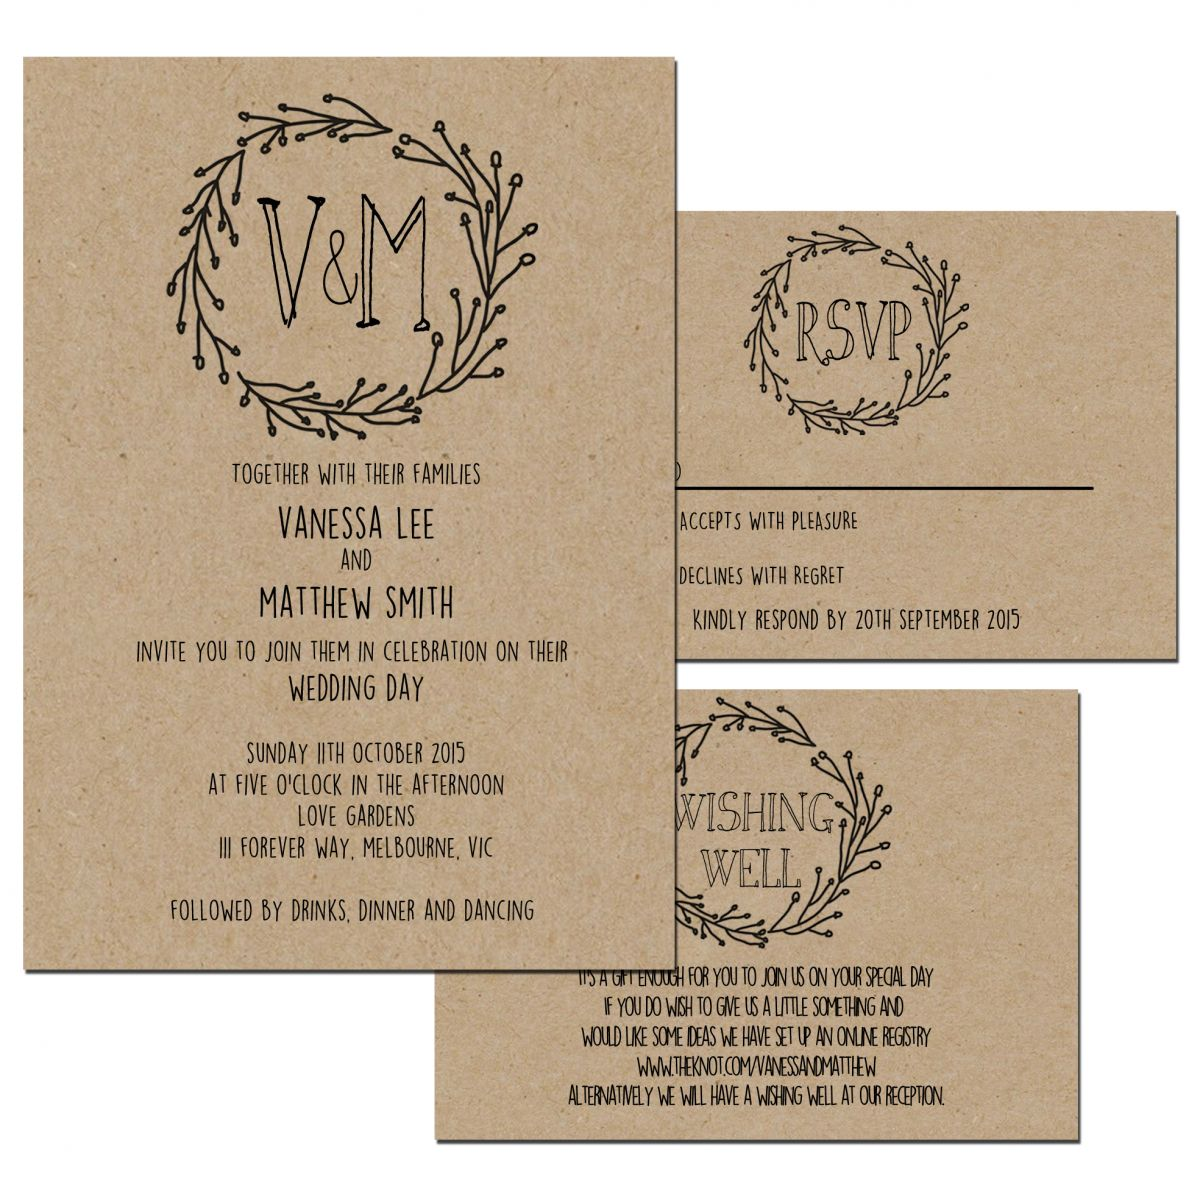 When Do You Send Out Wedding Invitations.When To Send Out Your Wedding Invitations